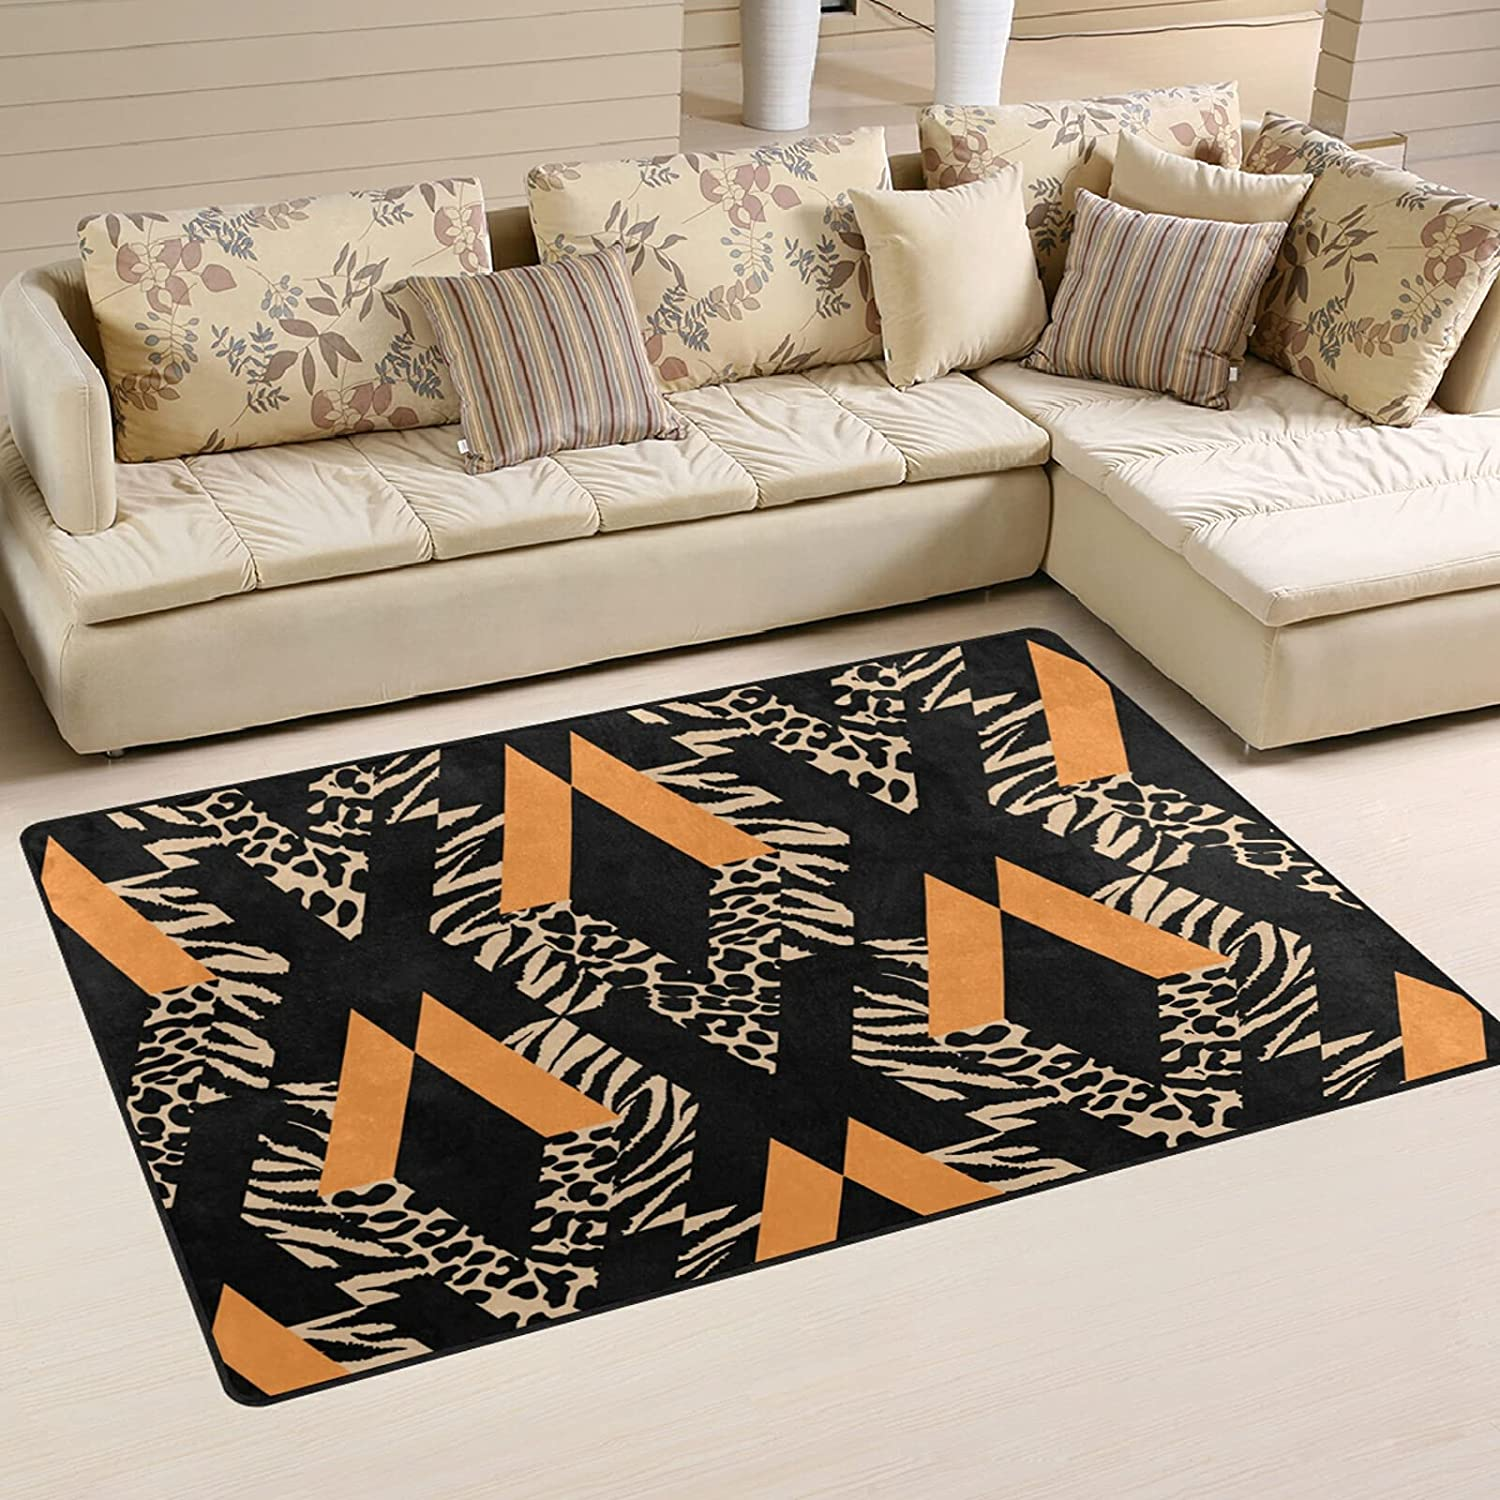 New Orleans Mall Grunge Ink Pattern Large Soft Large-scale sale Area Mat Rugs Nursery Rug Playmat